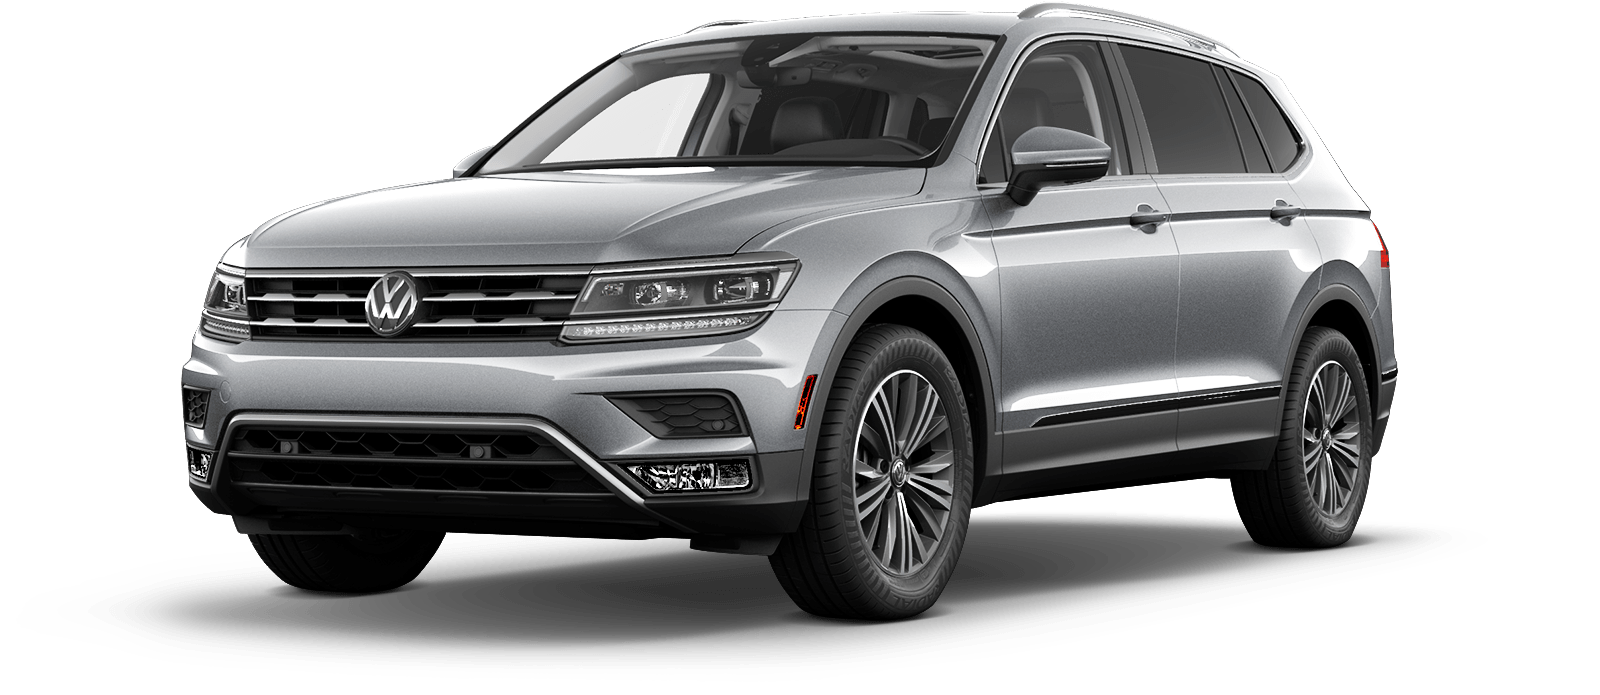 2014 Ford Paint Color Chart What Are The 2018 Vw Tiguan Exterior Options Platinum Grey Metallic